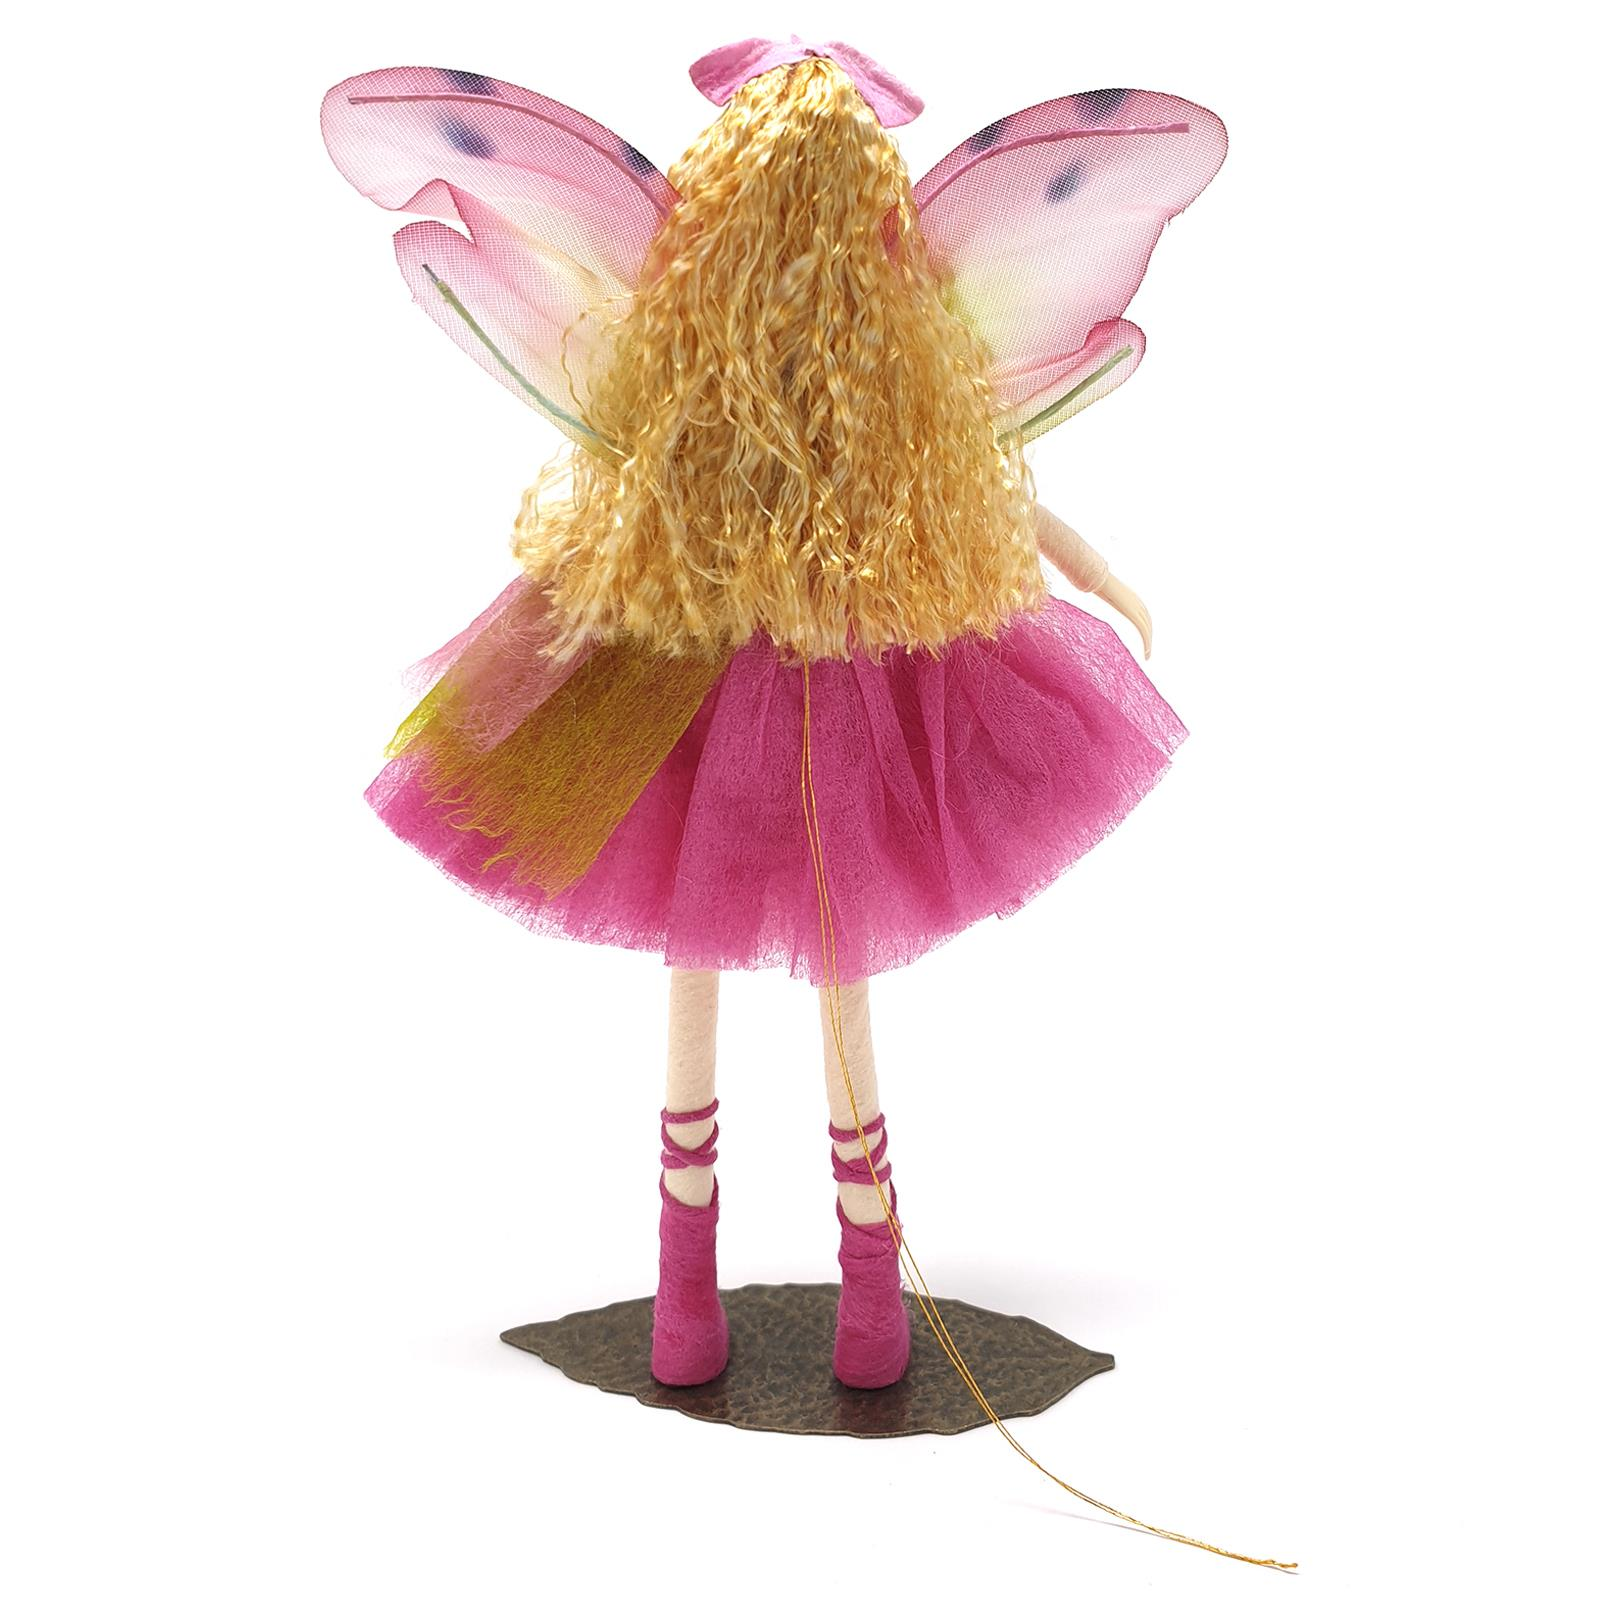 The-Fairy-Family-Collectable-Ornament-Mermaid-Forest-Fairies-Elf-Figurines-Gift thumbnail 39